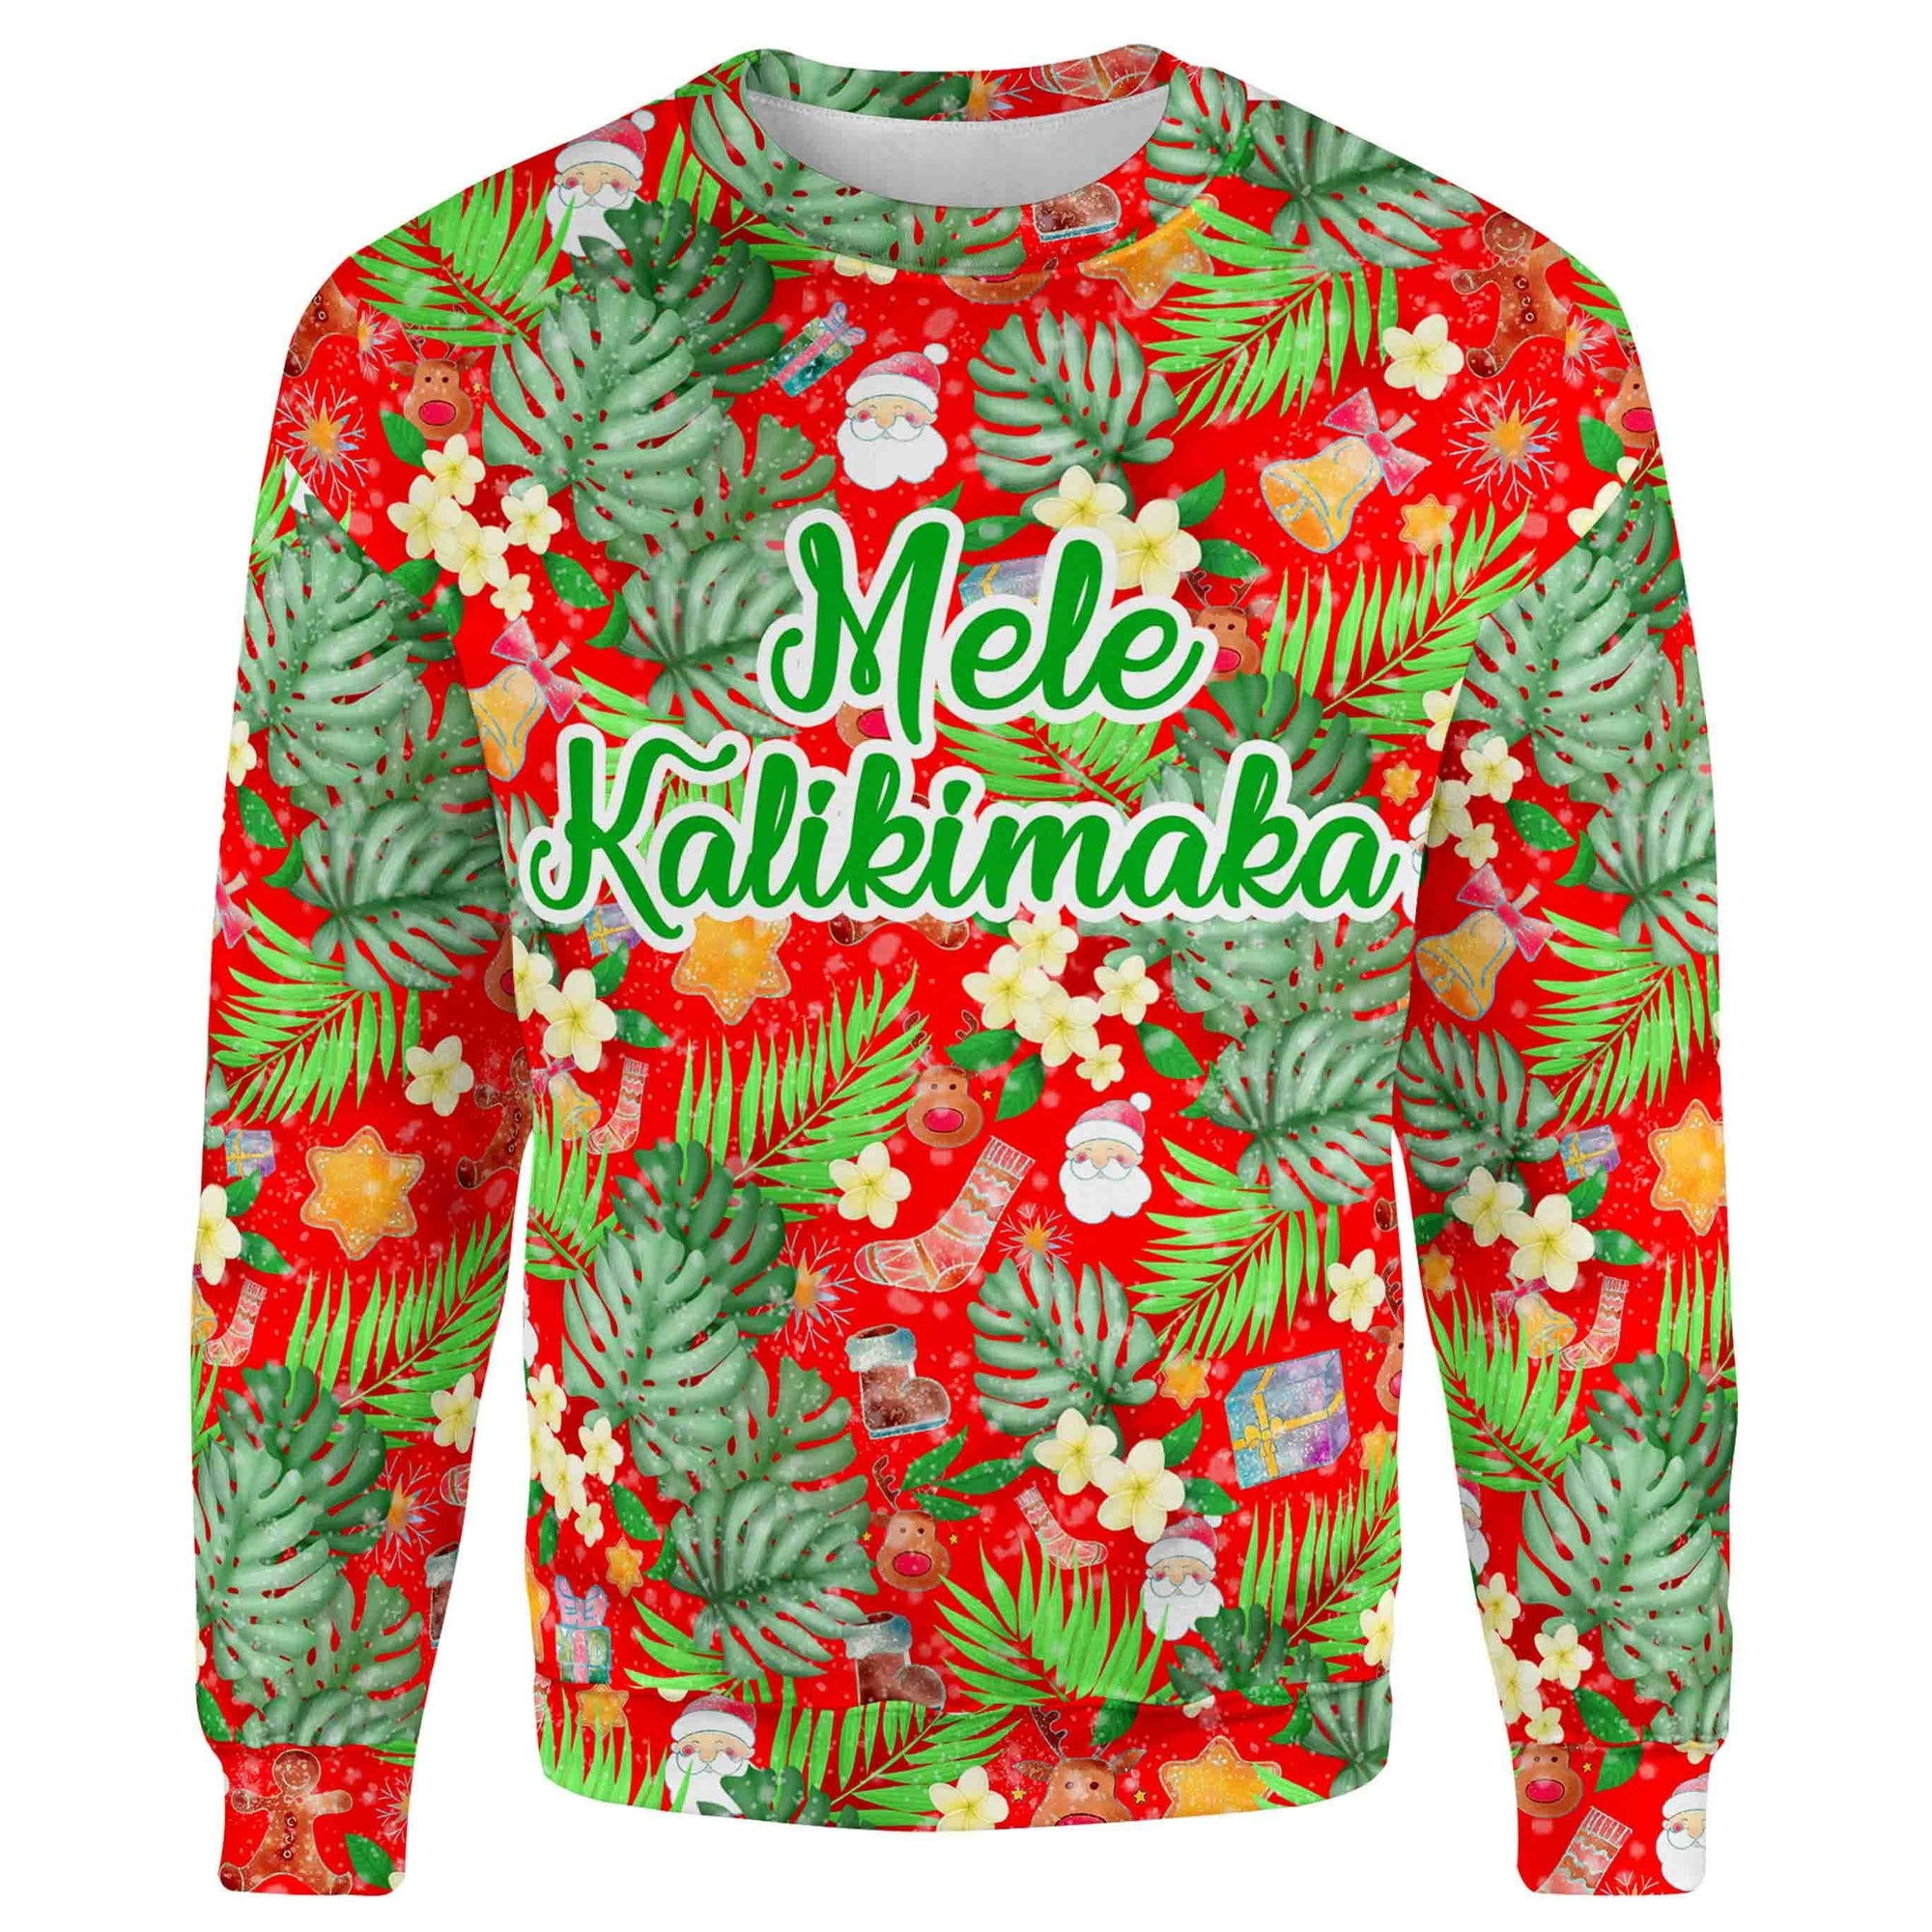 Mele Kalikimaka Christmas Sweater